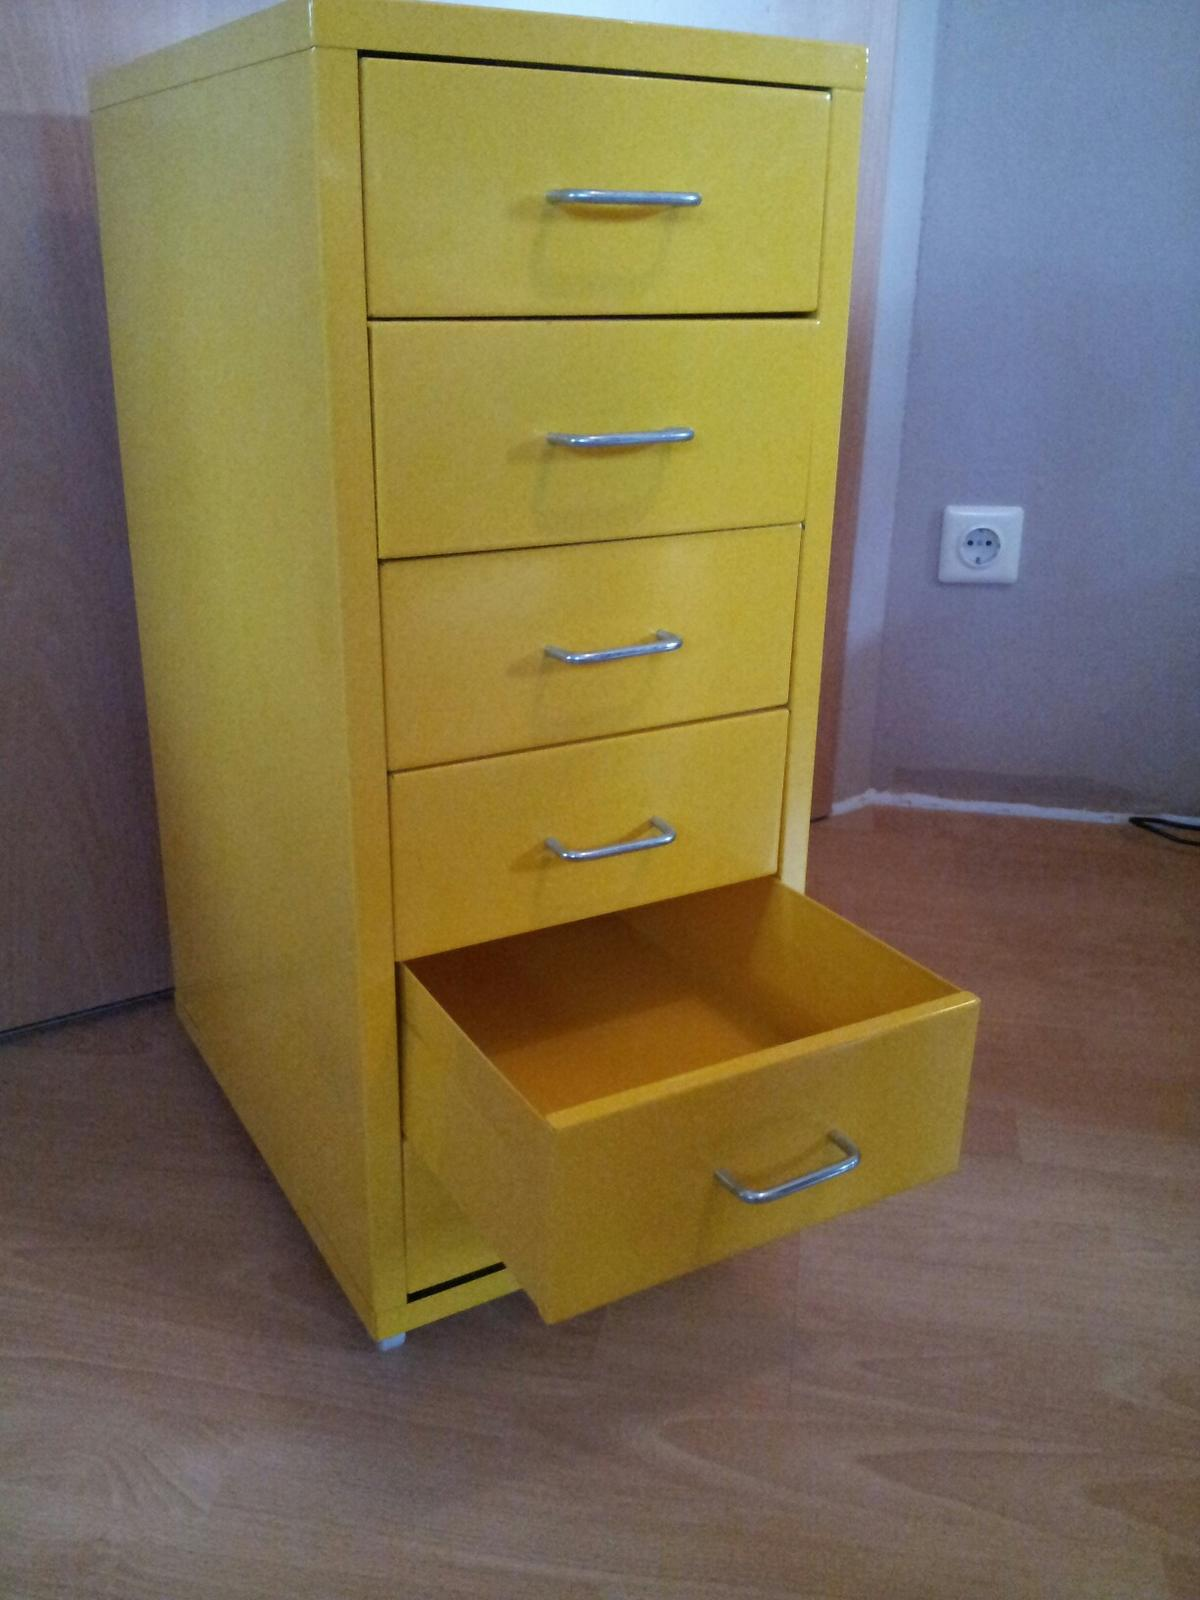 Ikea Metall Rollcontainer Super Zustand In 46509 Xanten For 15 00 For Sale Shpock